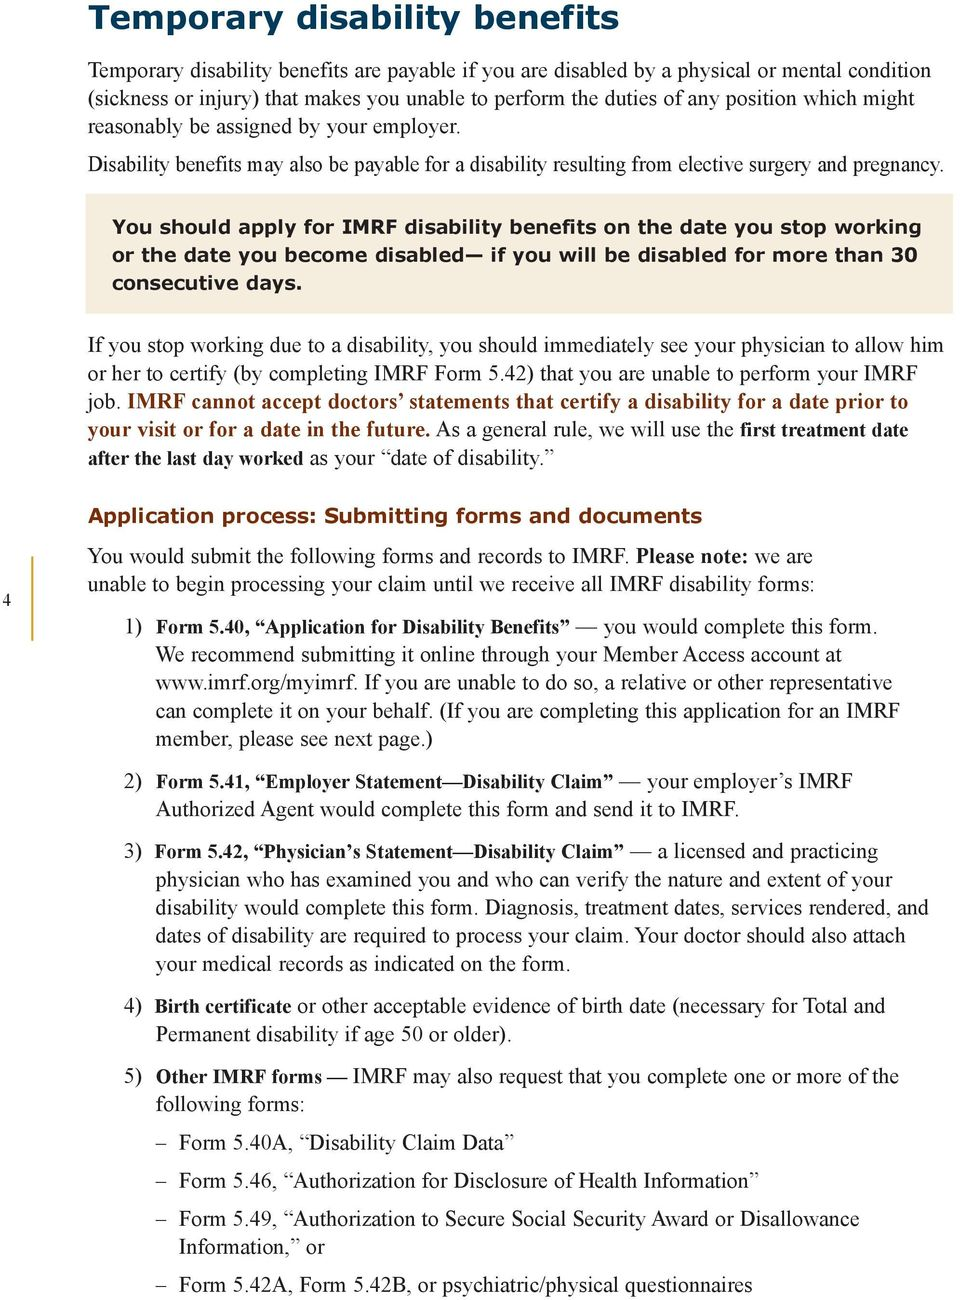 You should apply for IMRF disability benefits on the date you stop working or the date you become disabled if you will be disabled for more than 30 consecutive days.